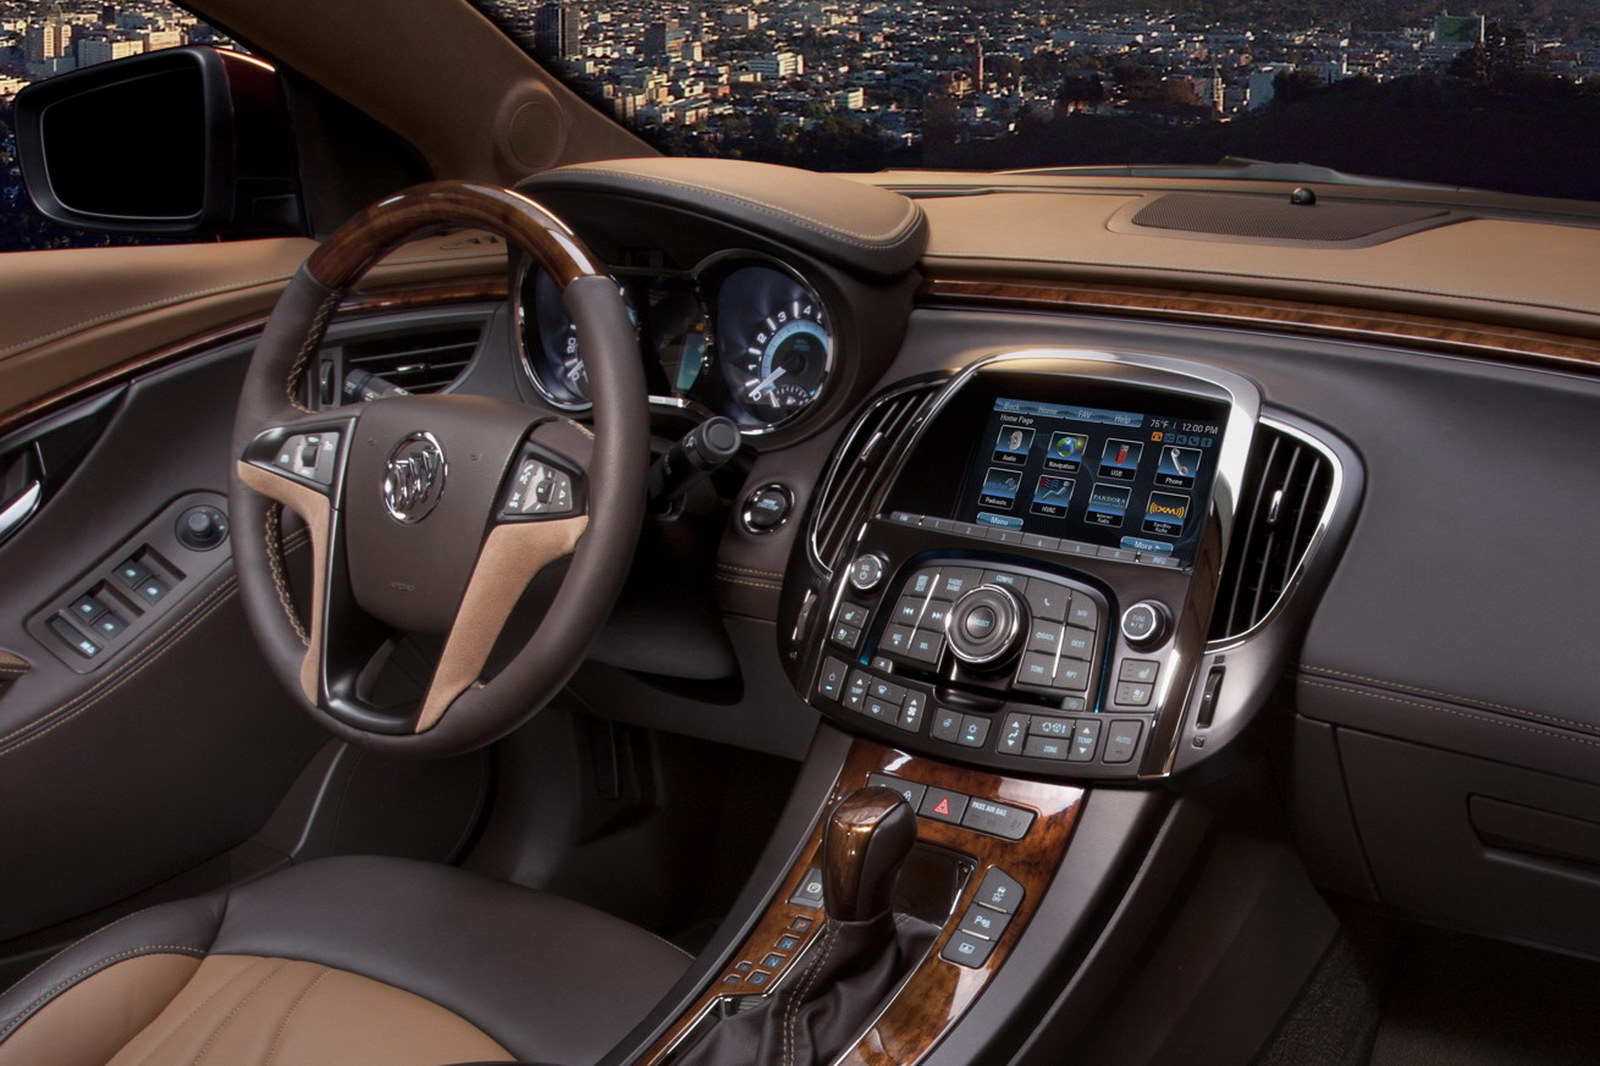 2011 Buick Lacrosse Gl Concept To Debut At La Auto Show Autoevolution